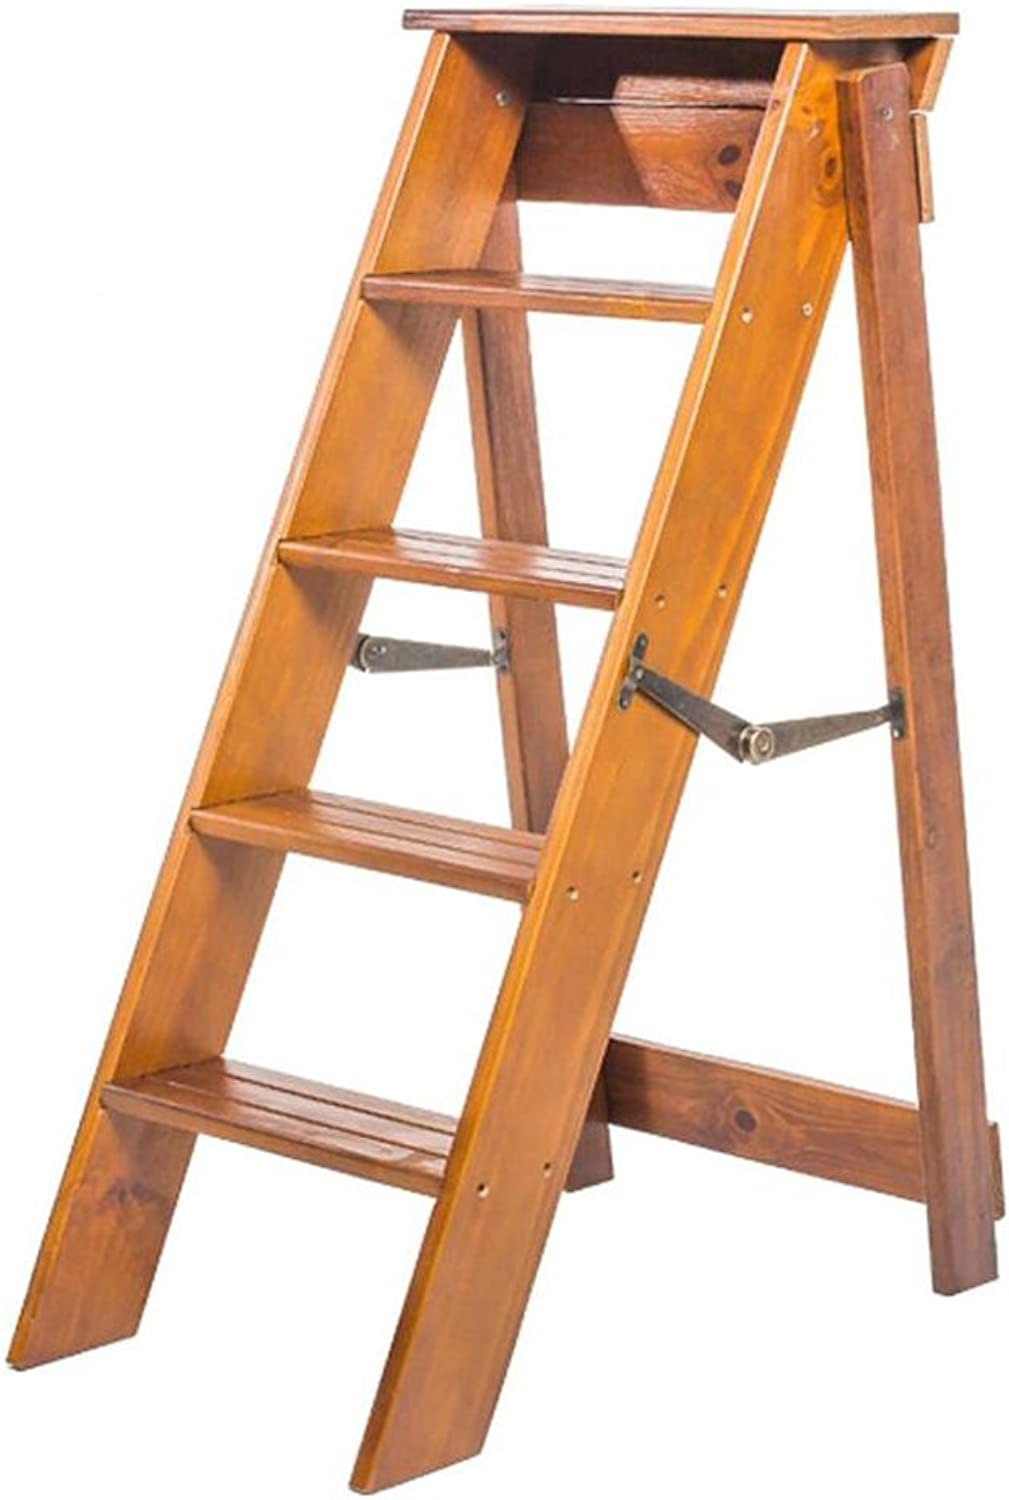 PENGFEI Folding Ladder Stool Stairs Solid Wood Multifunction Portable Home Renovation Herringbone Ladder Safety Stable 5 Steps 3 colors Furniture (color   Light Walnut)